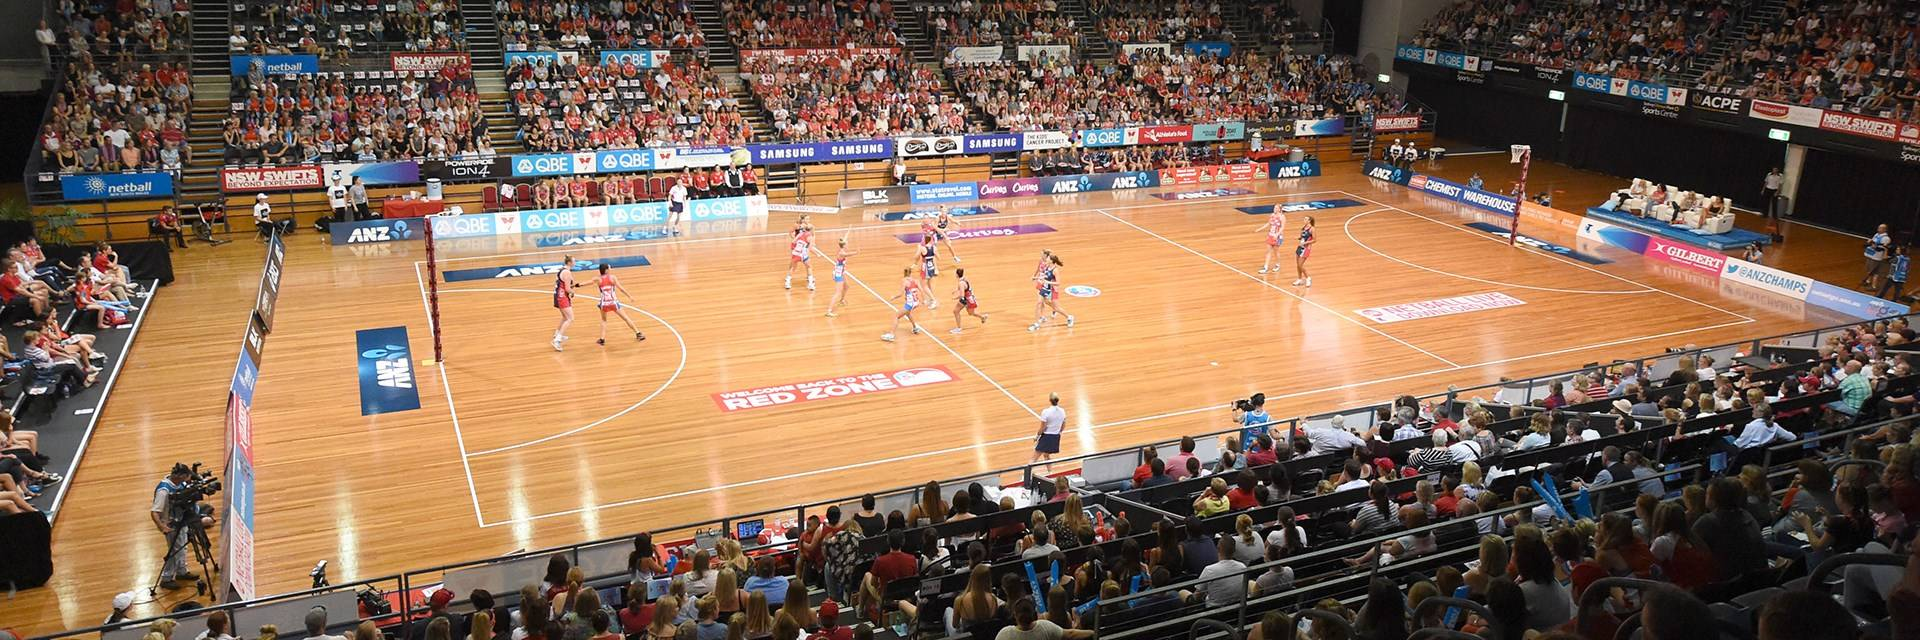 Sydney Olympic Park Sports Centre  - Sydney Swifts, court and crowd - Photo by Delly Carr